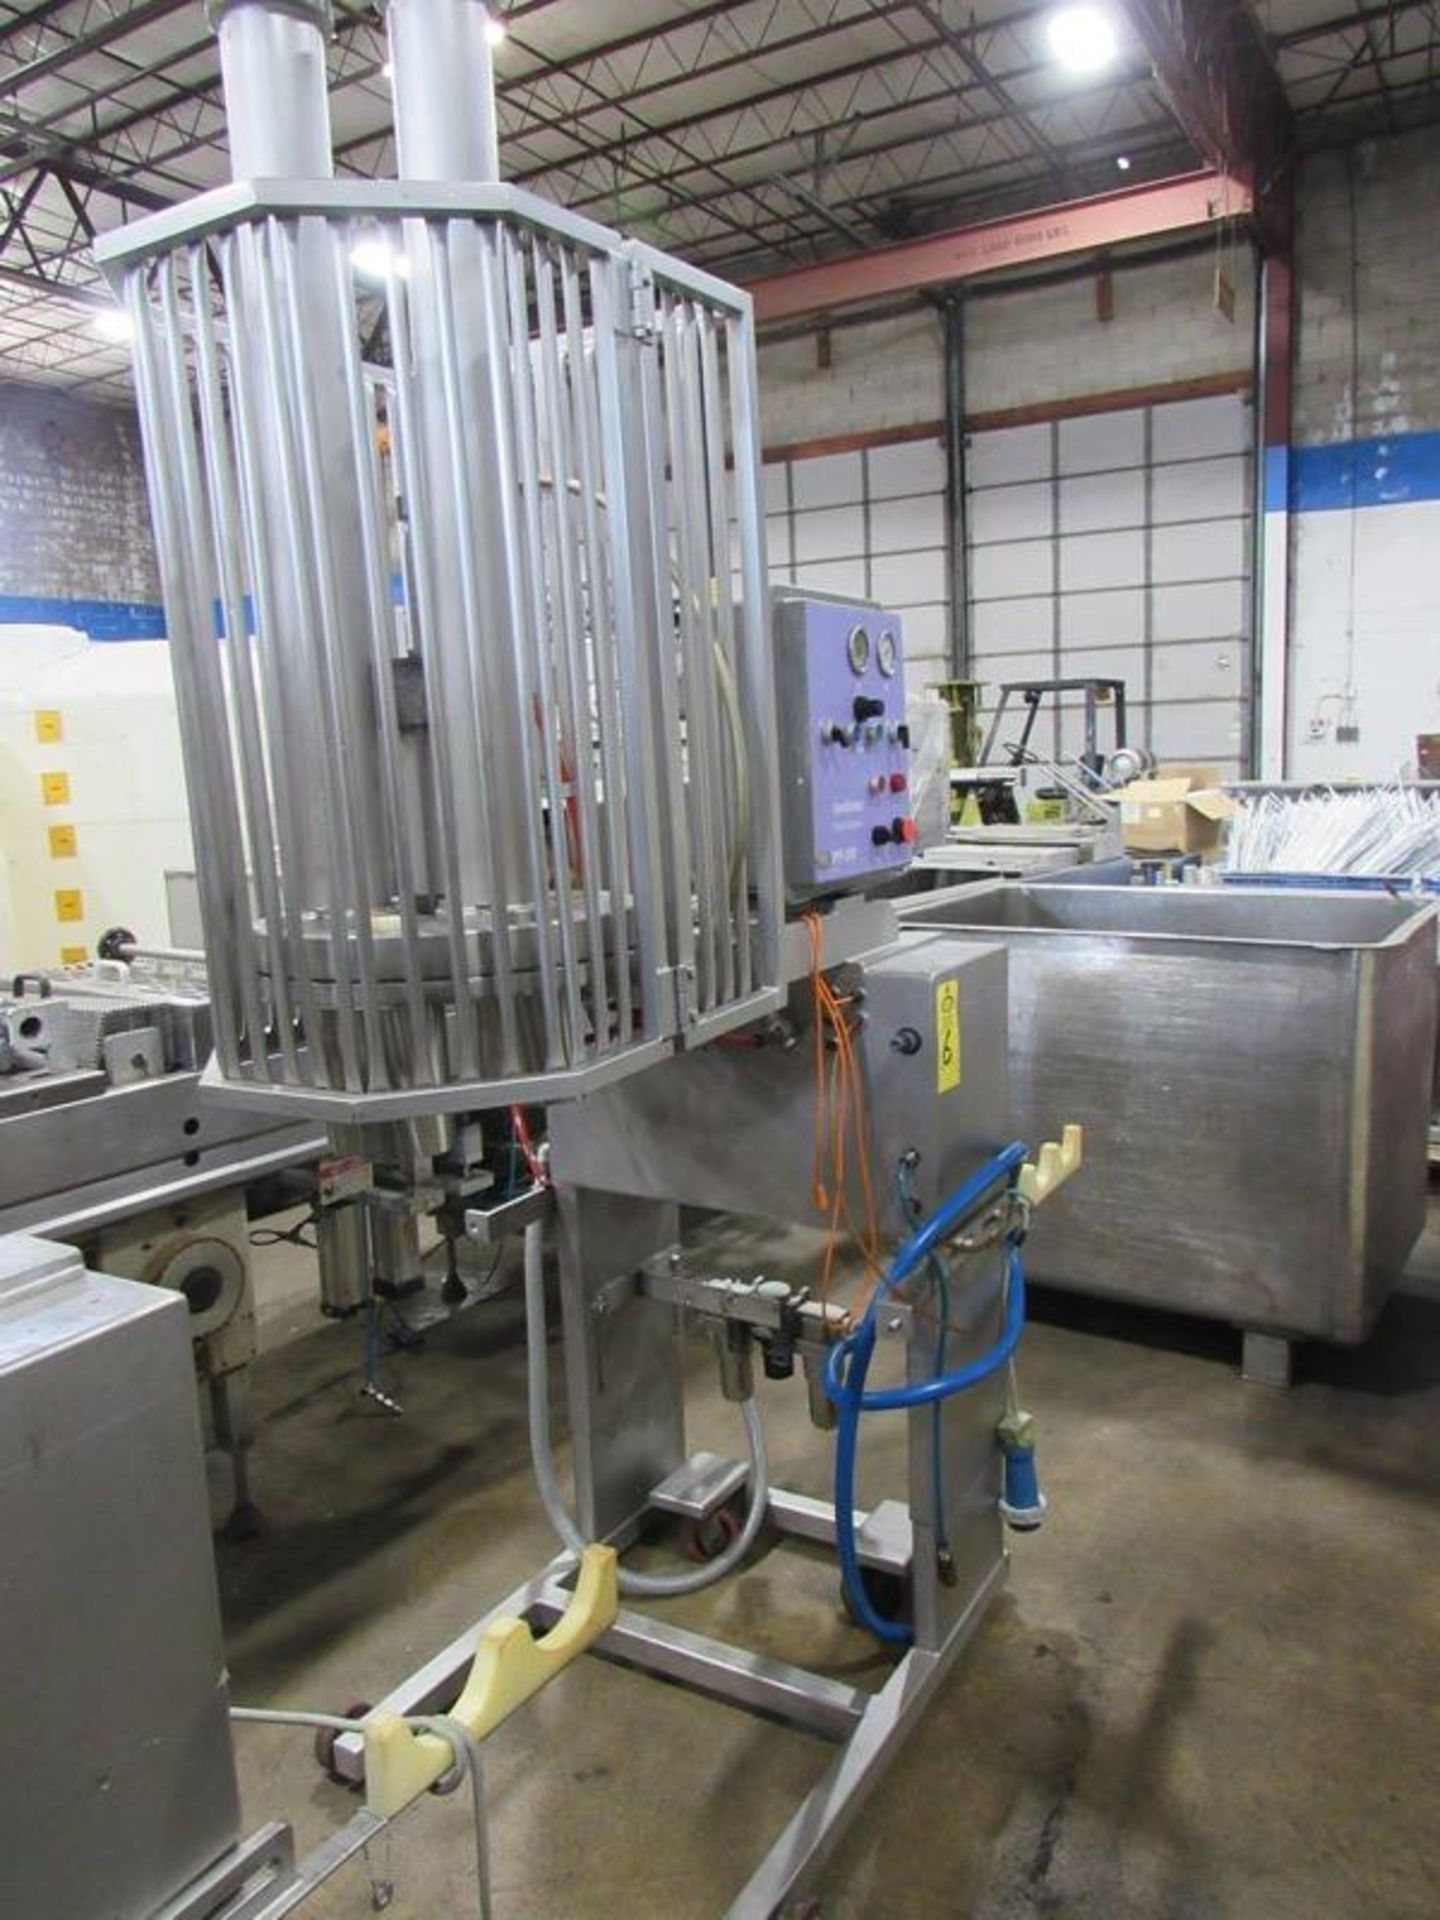 Handtmann Mdl. VPF-35R Portioning Machine (Equipment must be removed by Thursday, June 24th no